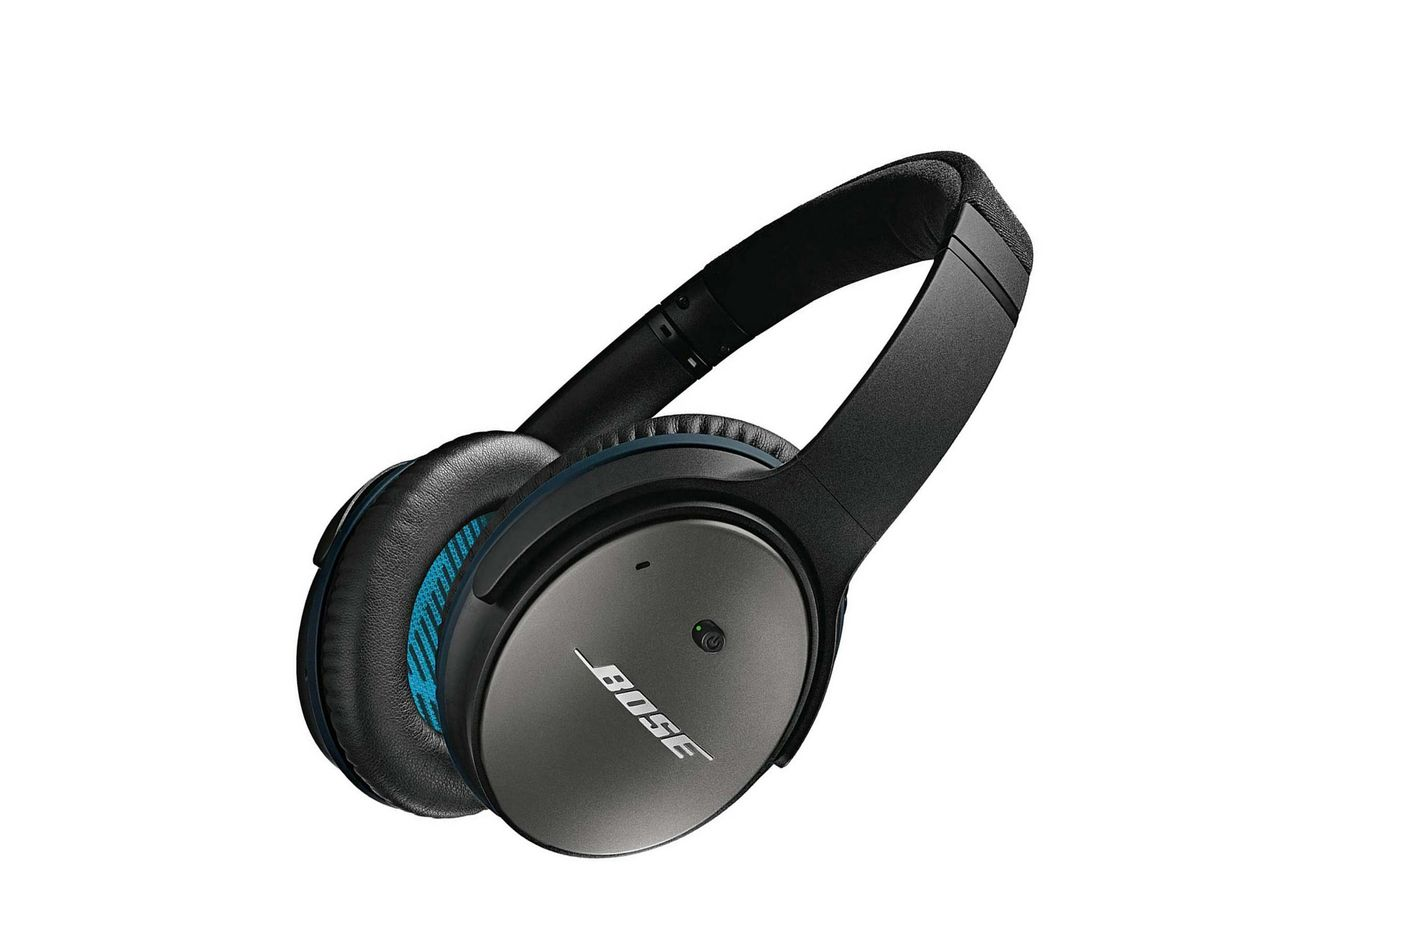 Bose QuietComfort Noise-Cancelling Headphones